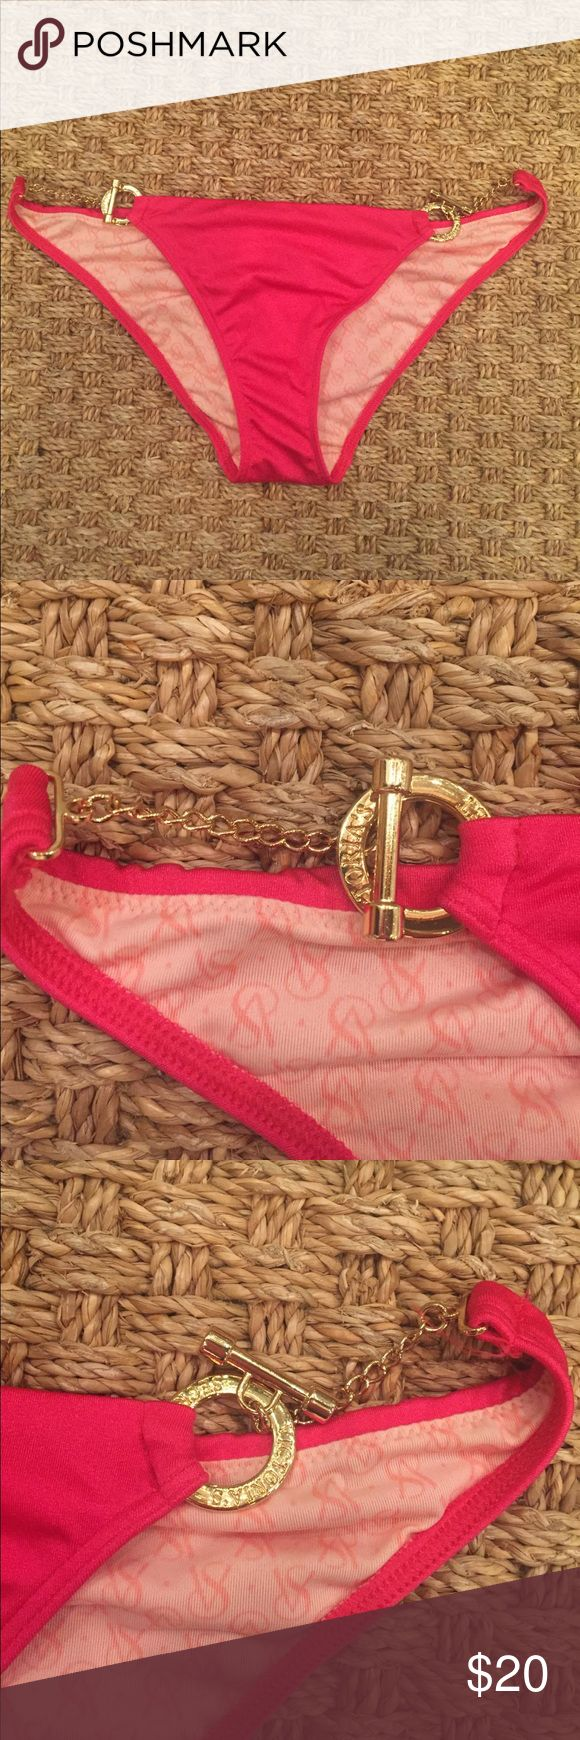 Victoria's Secret hot pink bikini bottoms Victoria's Secret hot pink gold toggle chain bikini bottoms size small worn once great condition no stains fuzzing snags etc! Bottoms run small in my opinion would fit a size xs Victoria's Secret Swim Bikinis